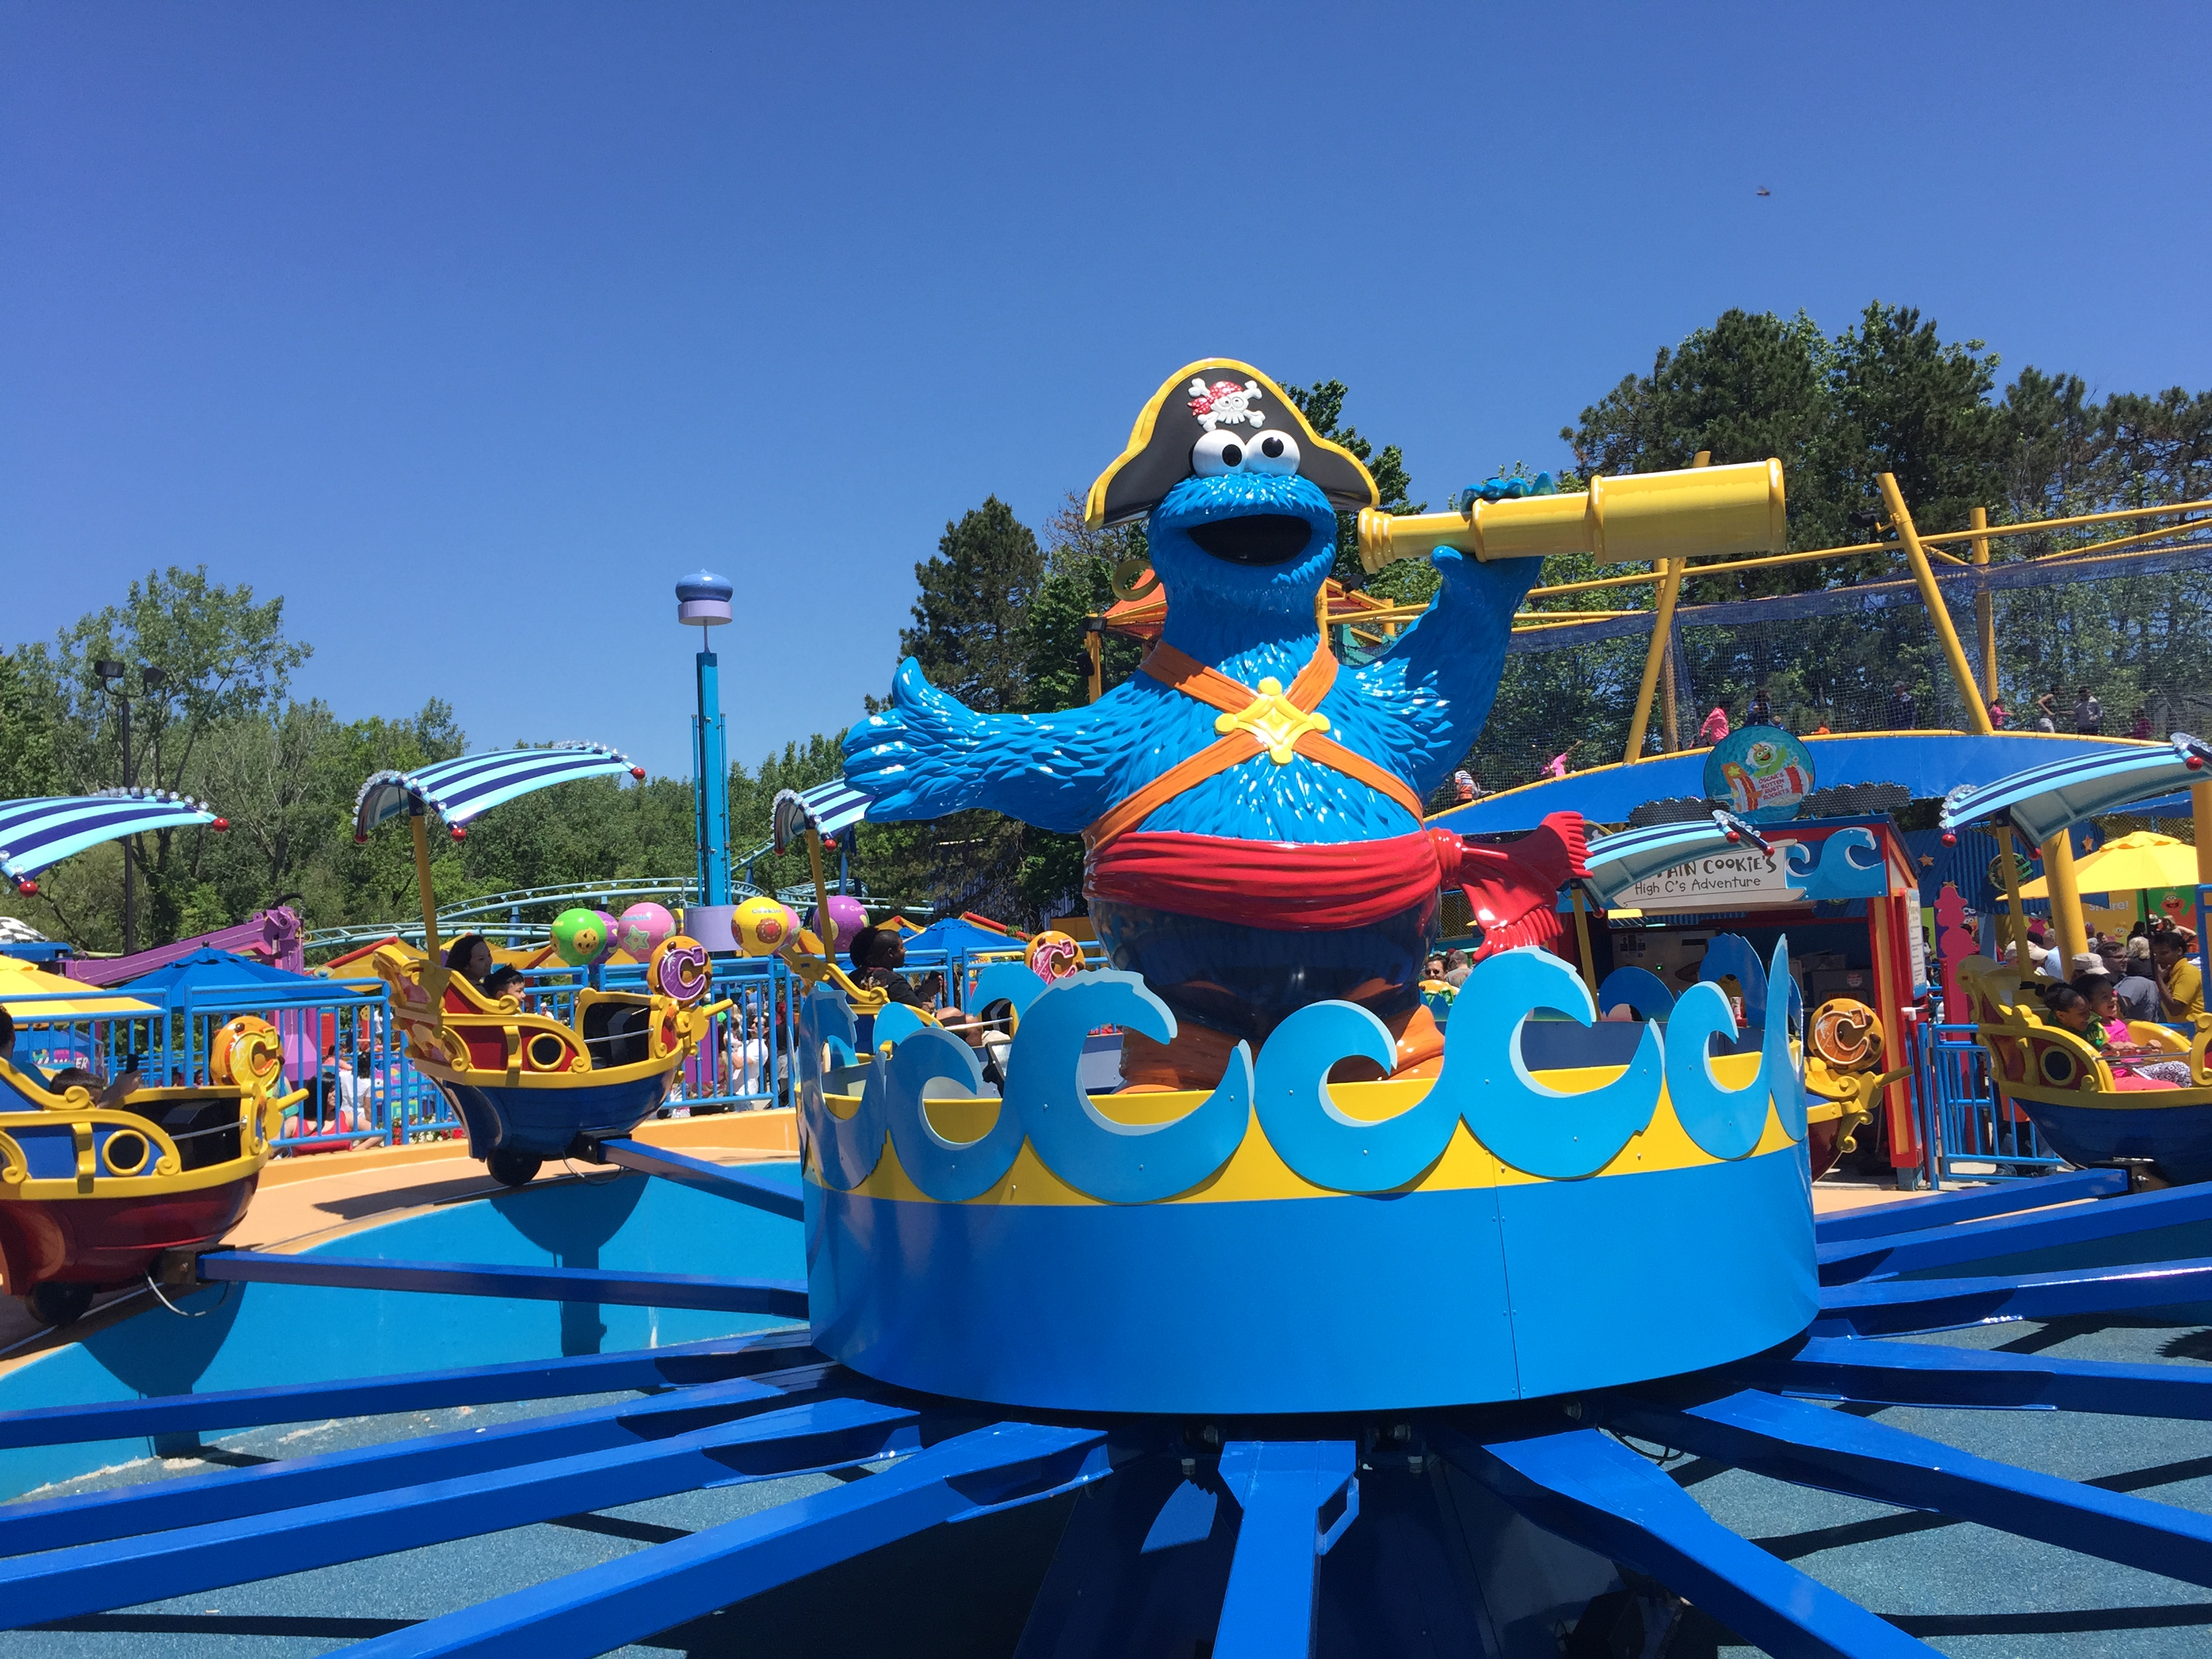 photograph about Sesame Place Printable Coupons identify Sesame Destination Cookies Monster Land